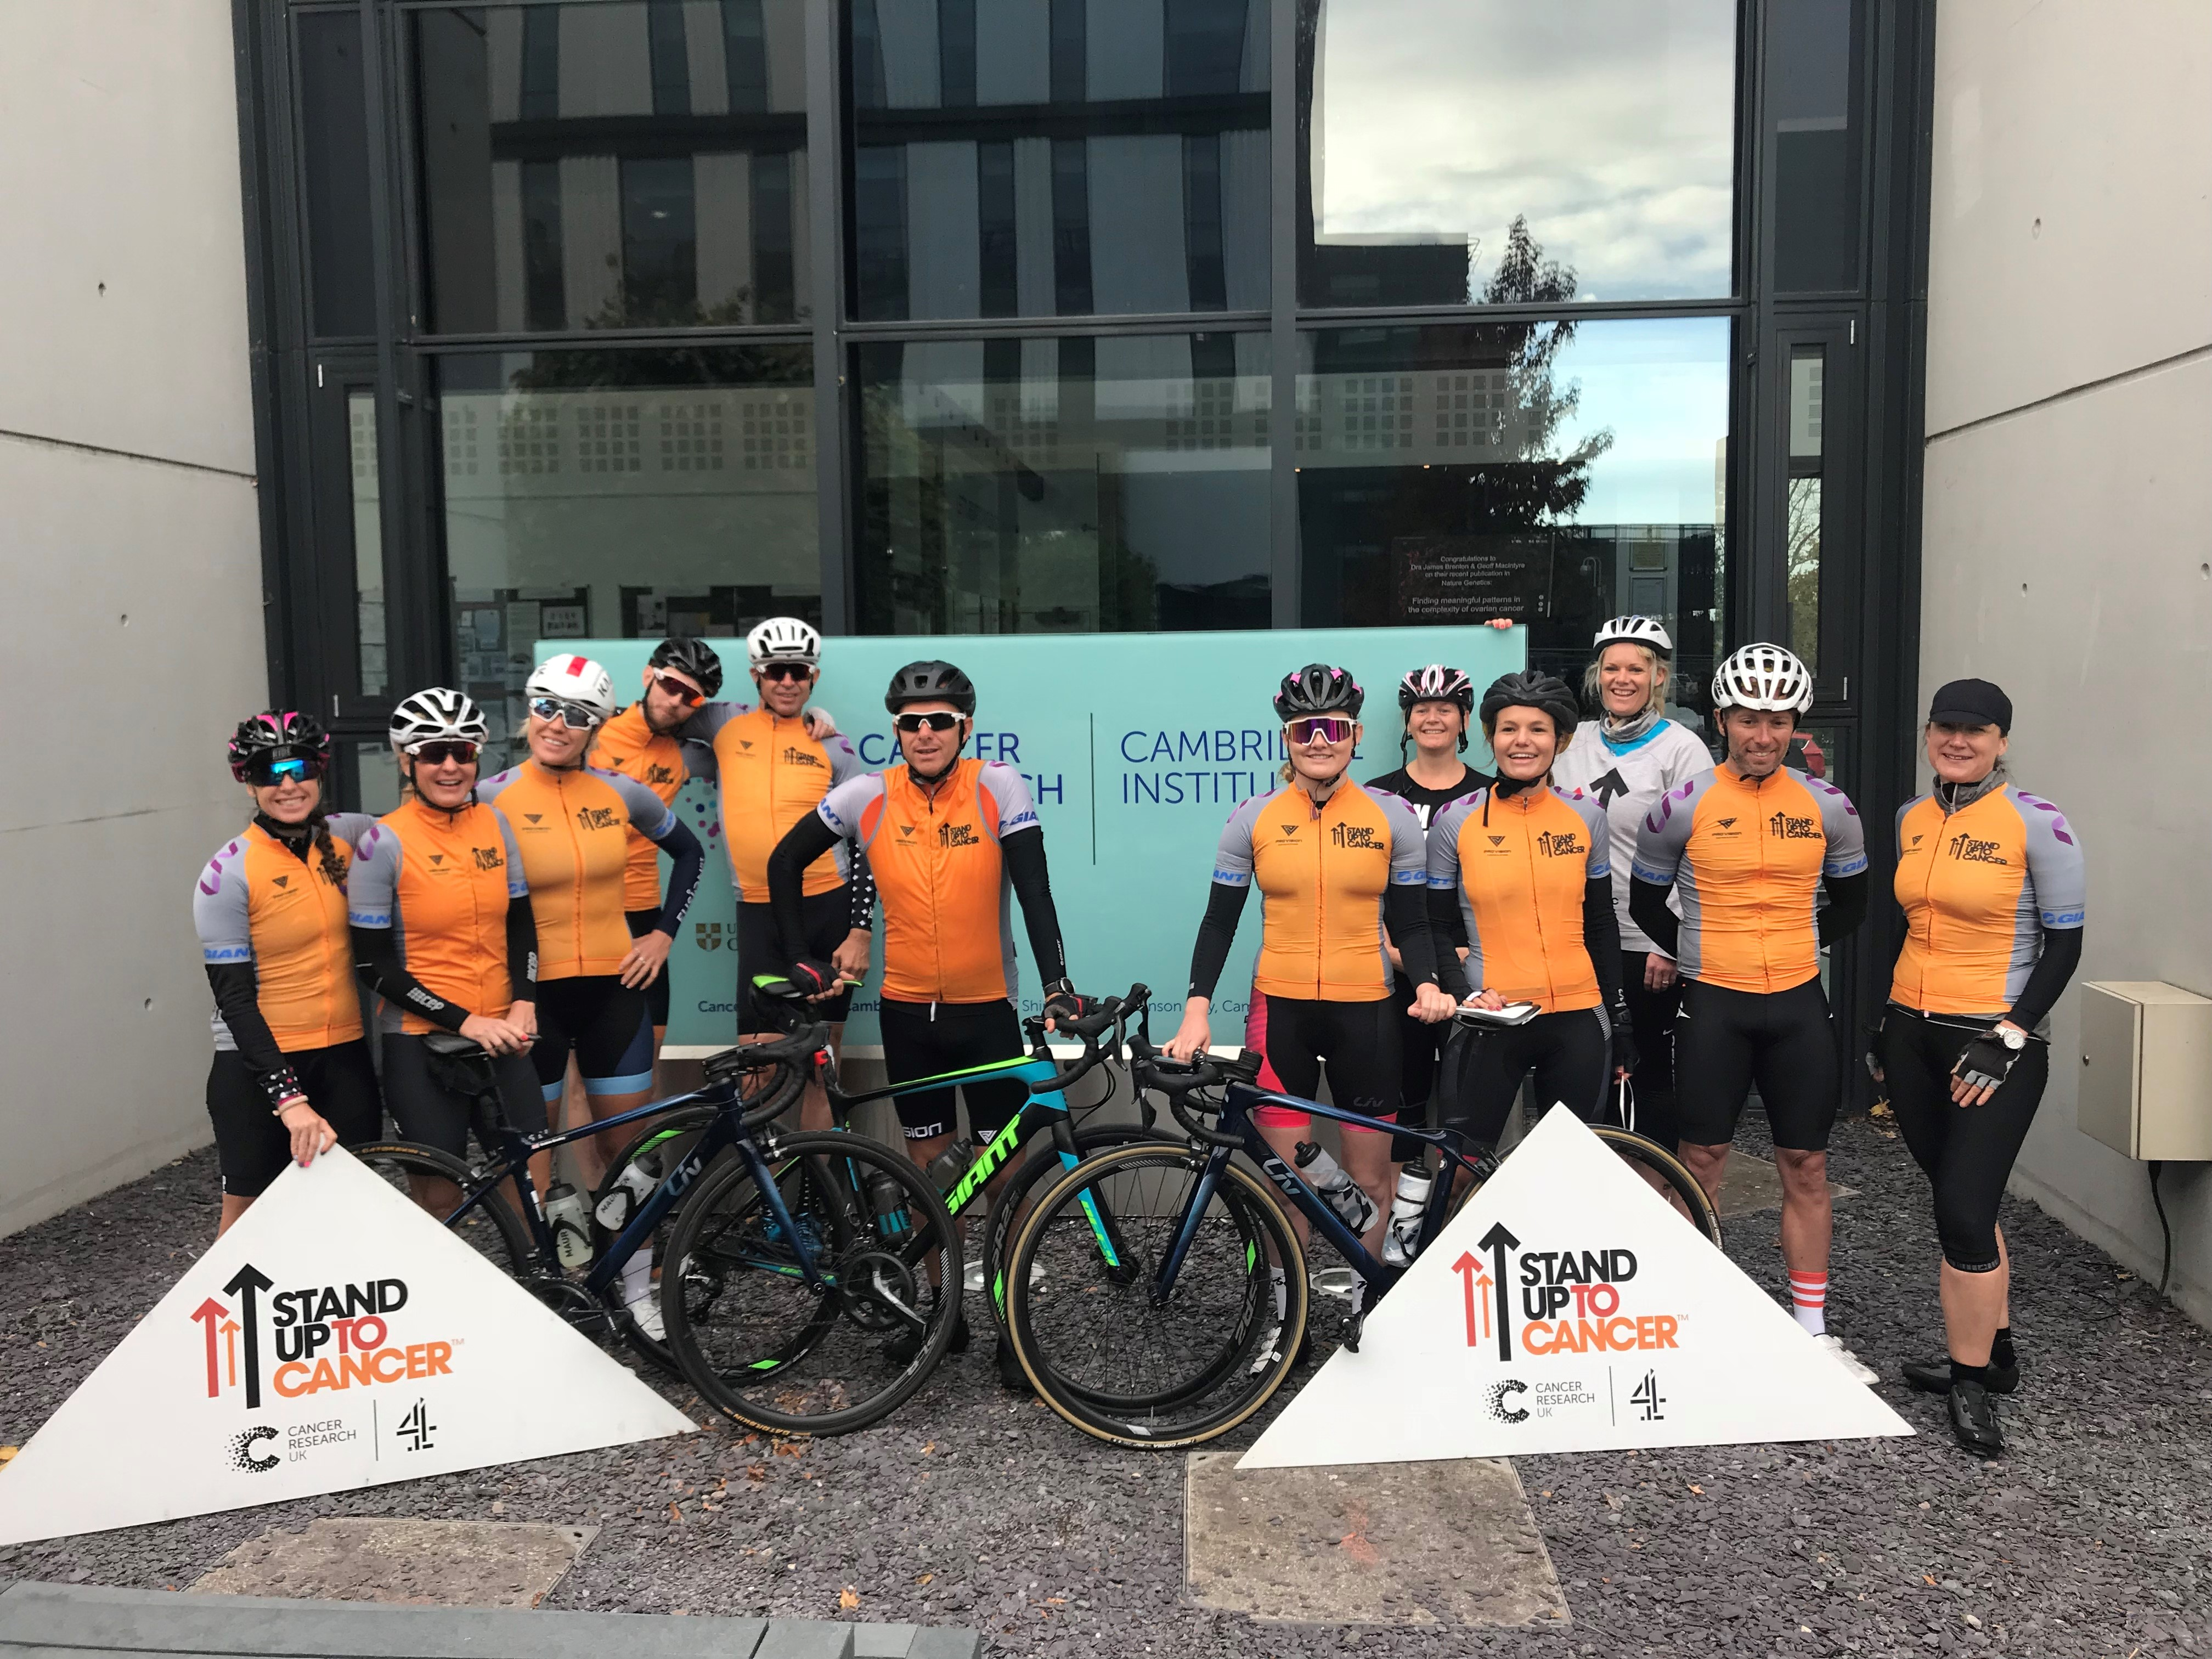 Stand Up To Cancer Cyclists On Final Cambridge London Leg